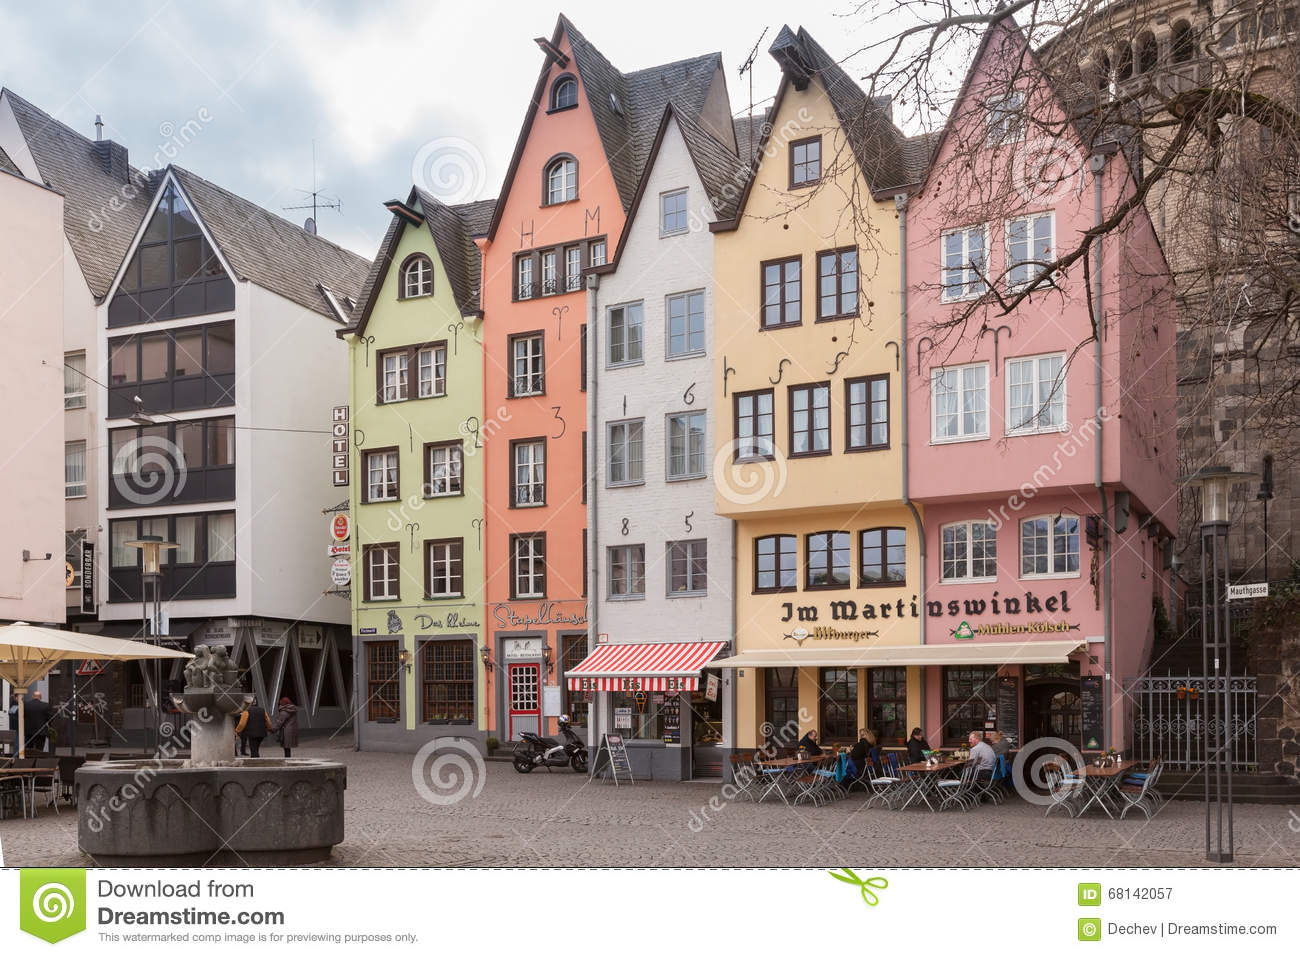 cologne allemagne 6 mars 2015 maisons color es dans la vieille ville sur le remblai du rhin. Black Bedroom Furniture Sets. Home Design Ideas